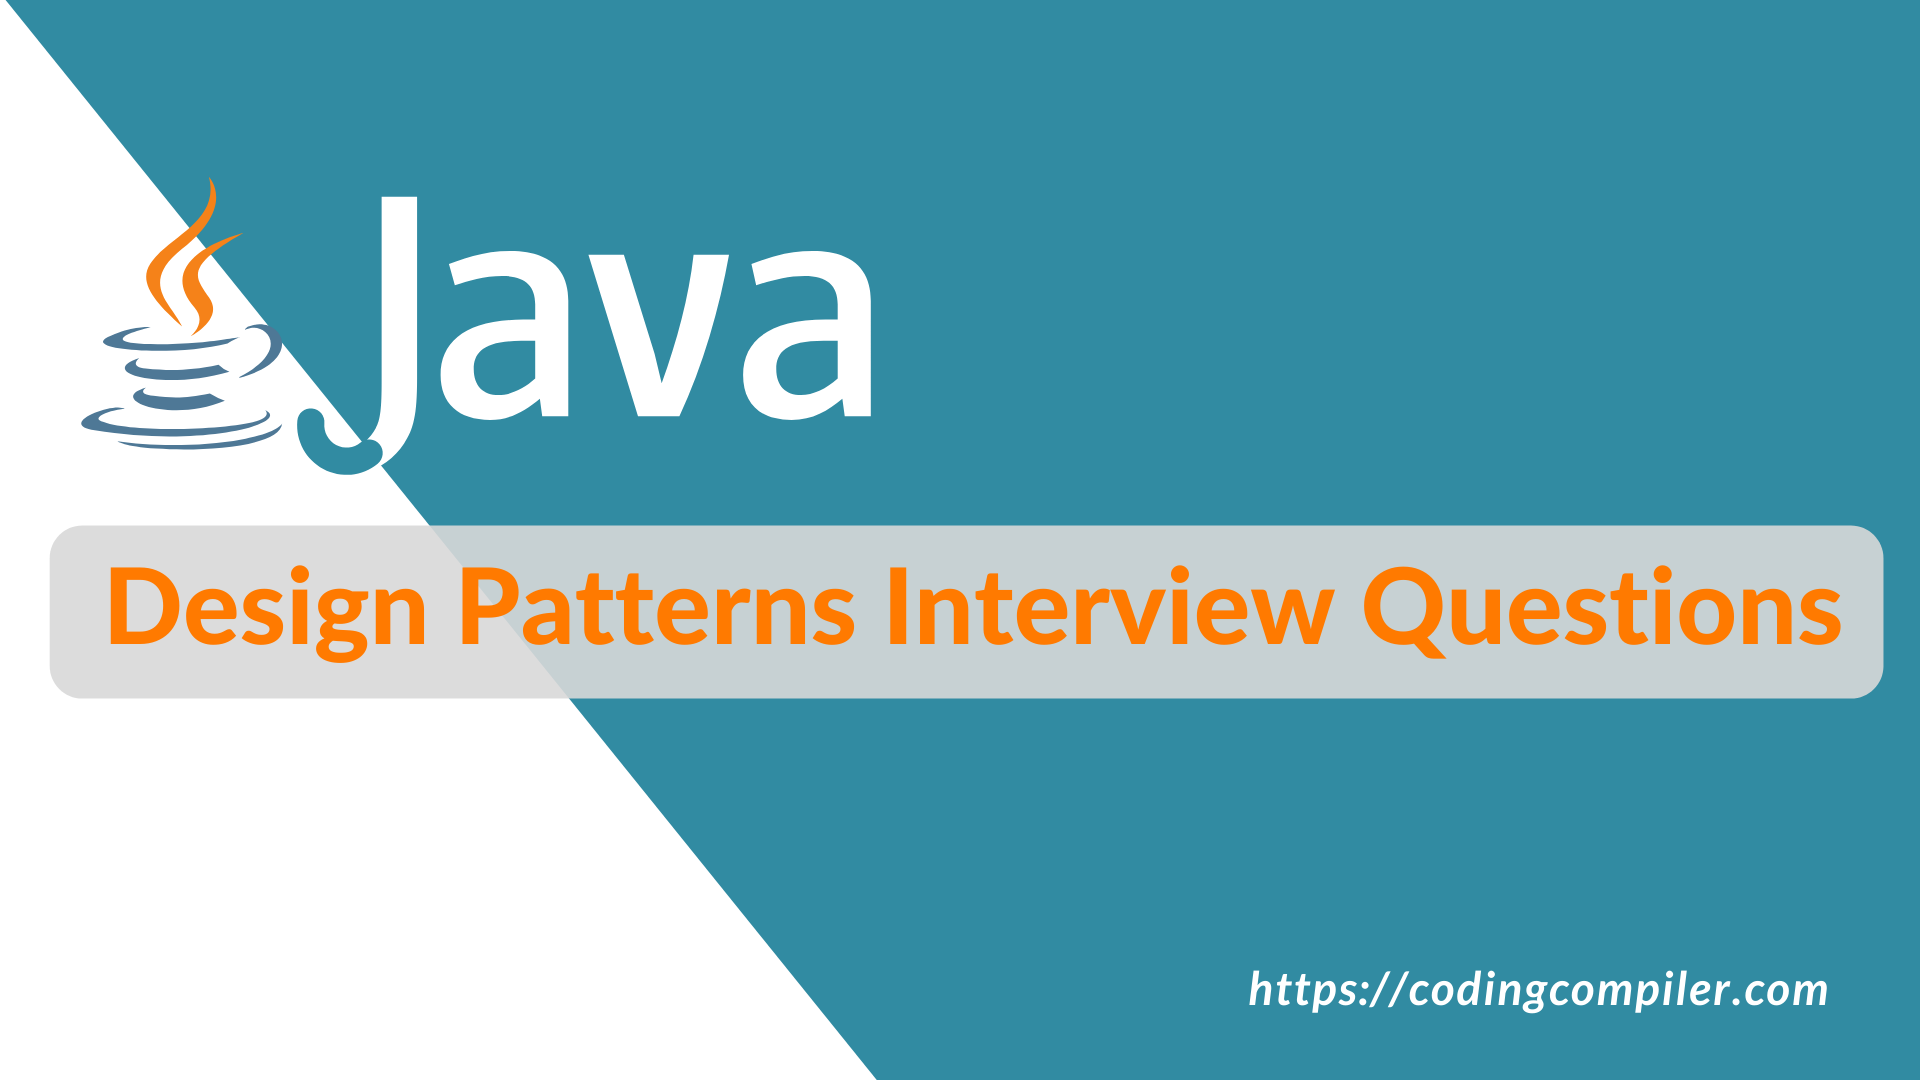 Java Design Patterns Interview Questions